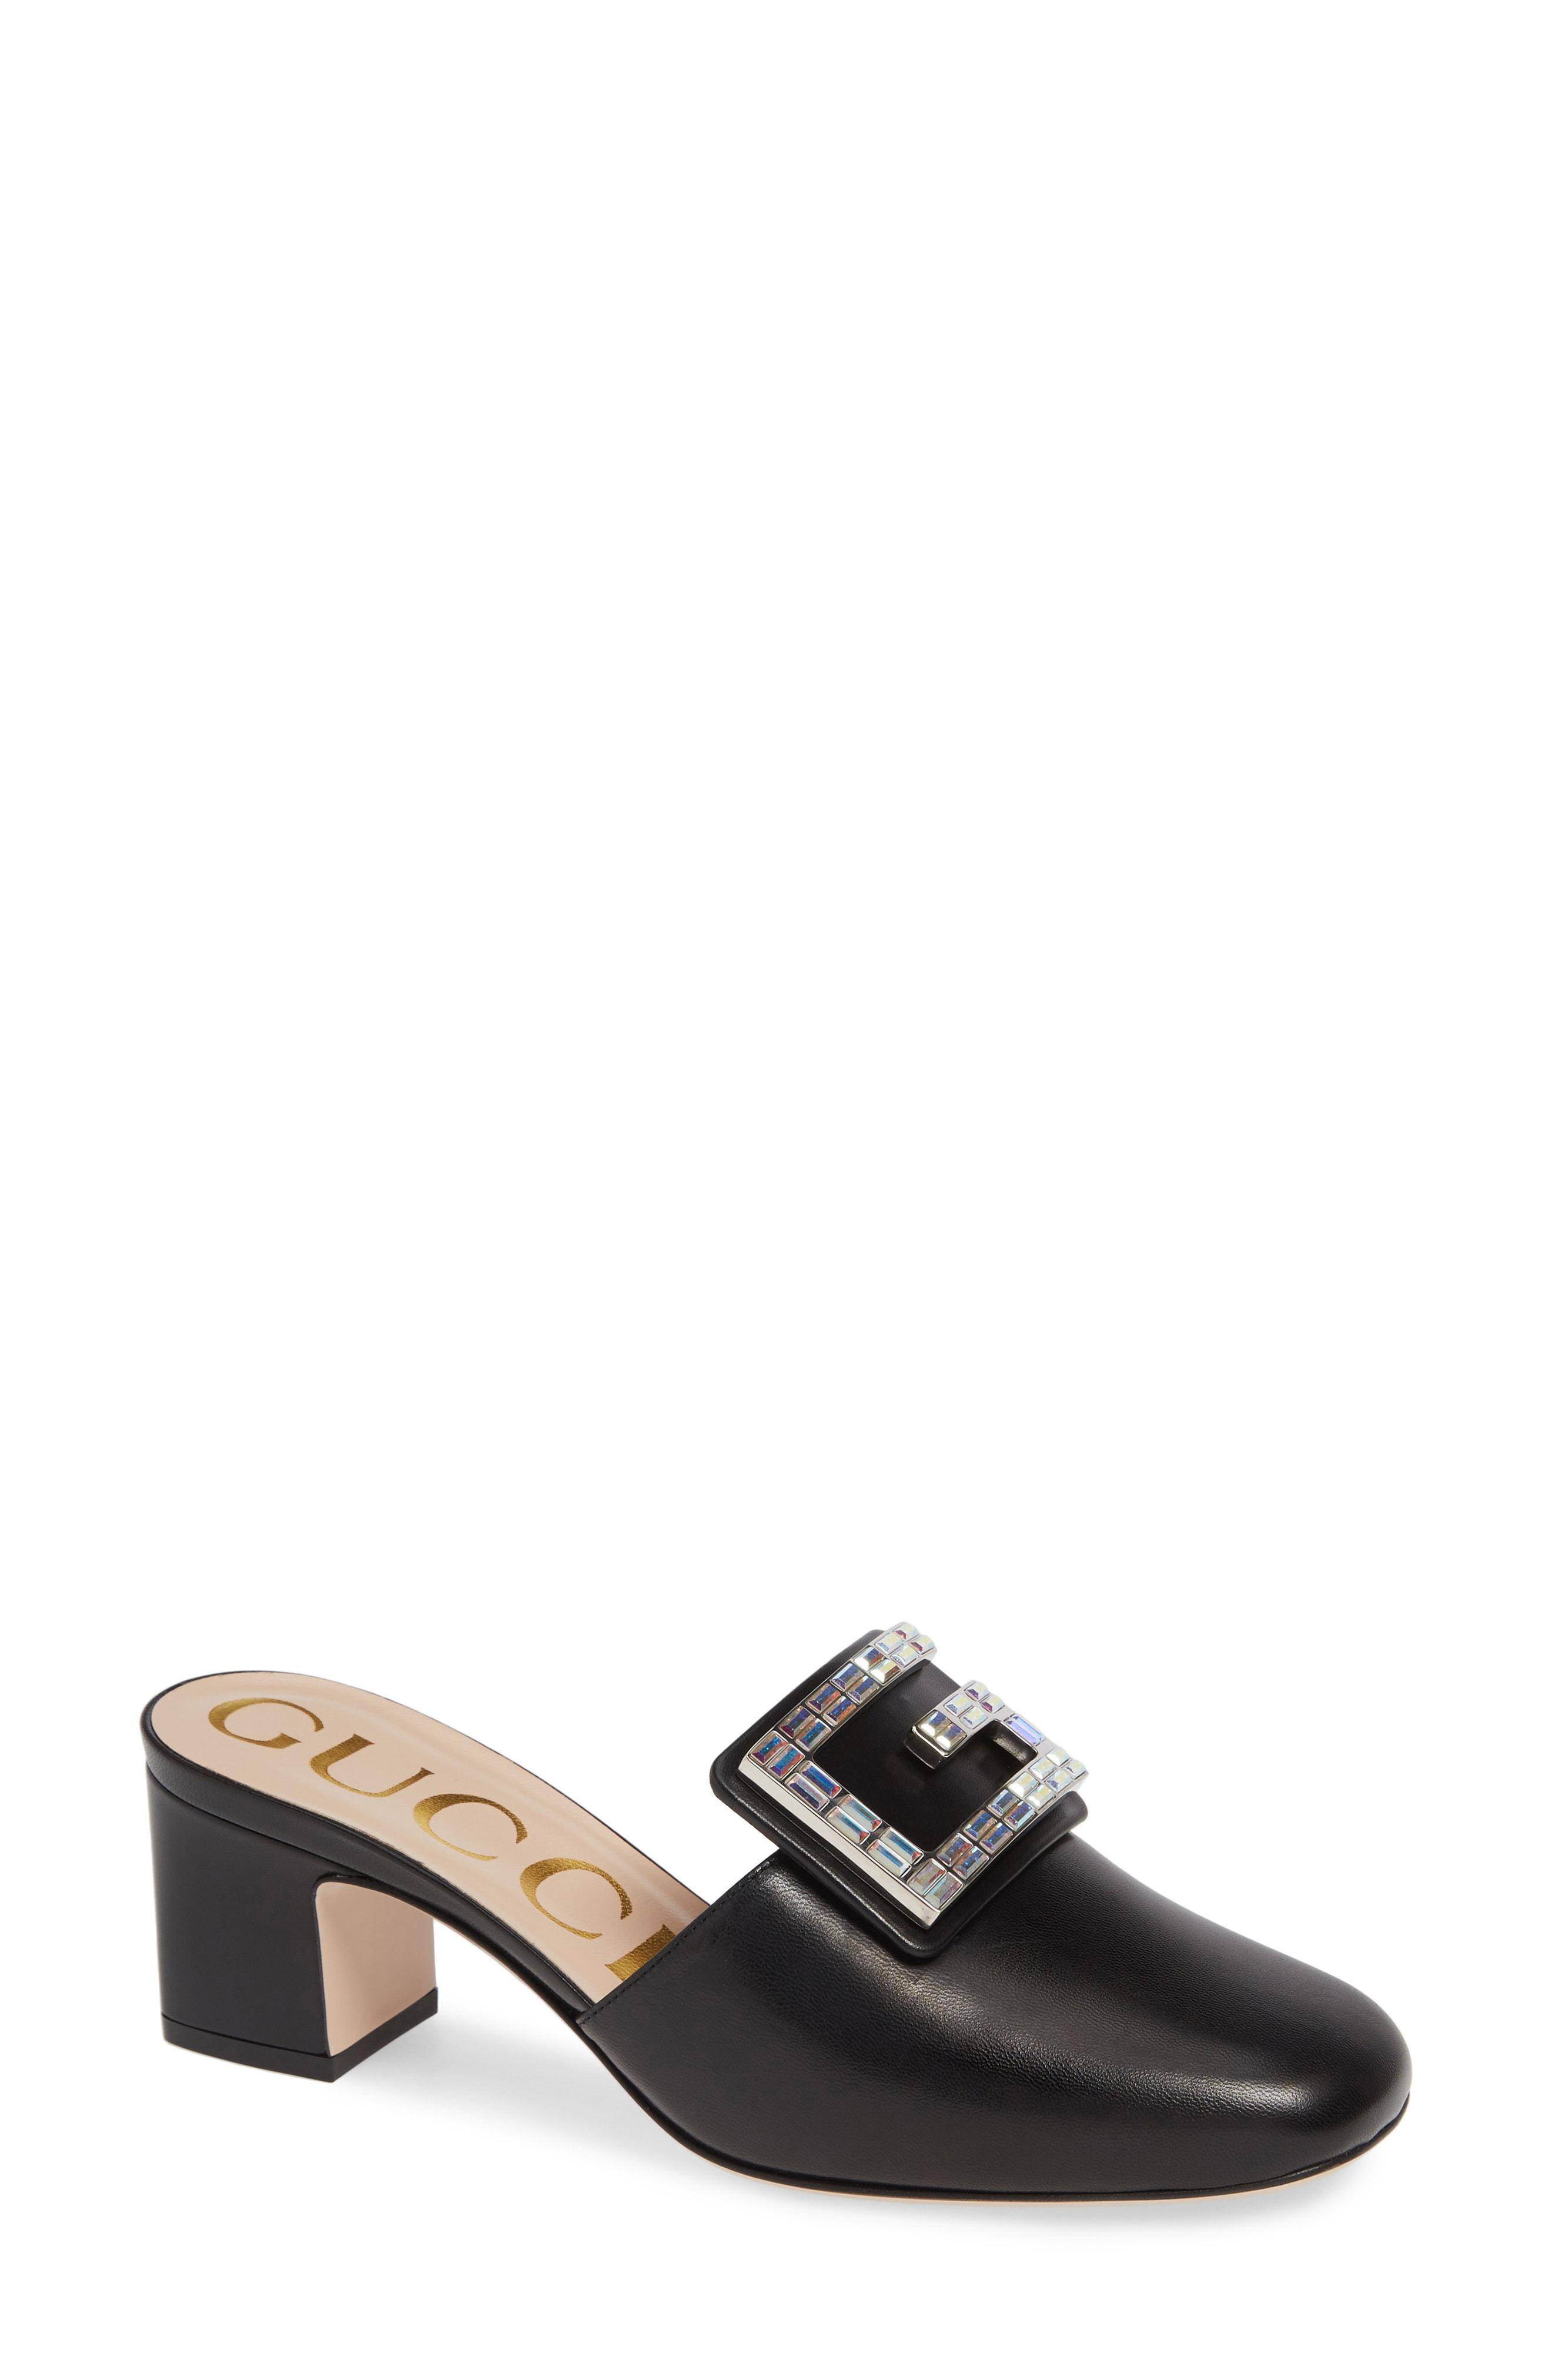 bca616777b1 Gucci. Women s Madelyn Crystal G Mule